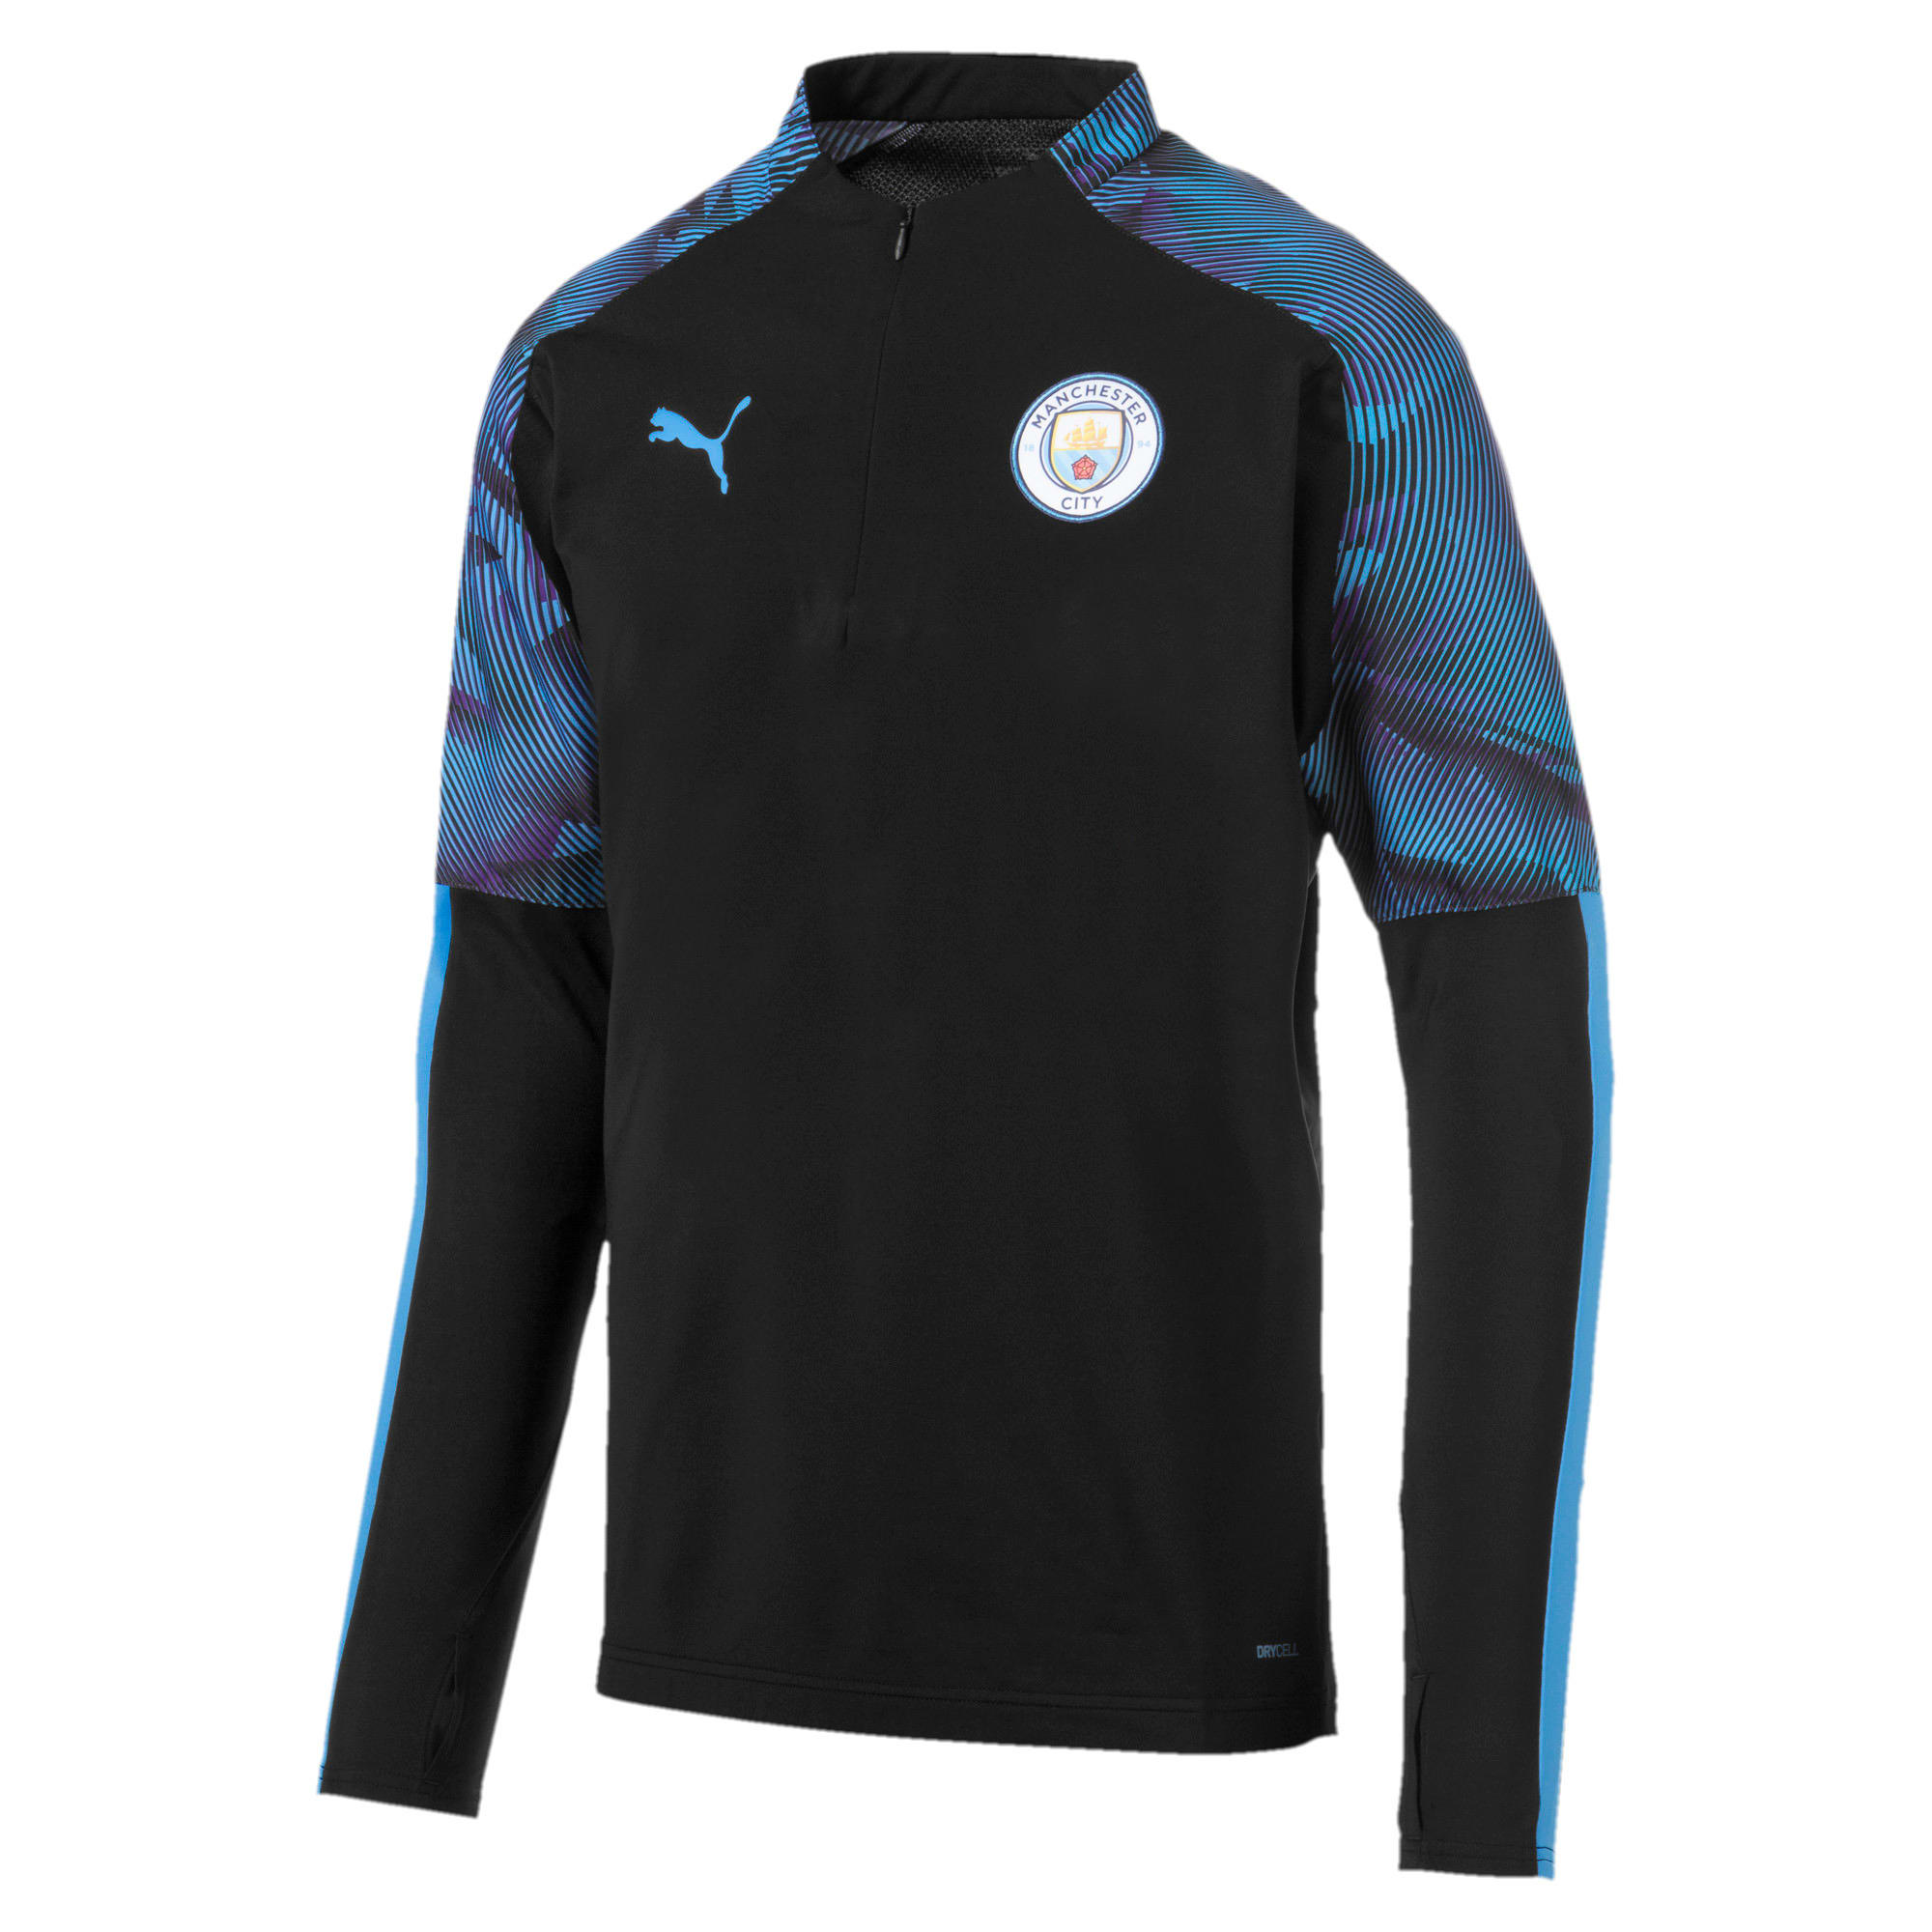 Thumbnail 1 of Manchester City FC Herren Sweatshirt, Puma Black-Team Light Blue, medium